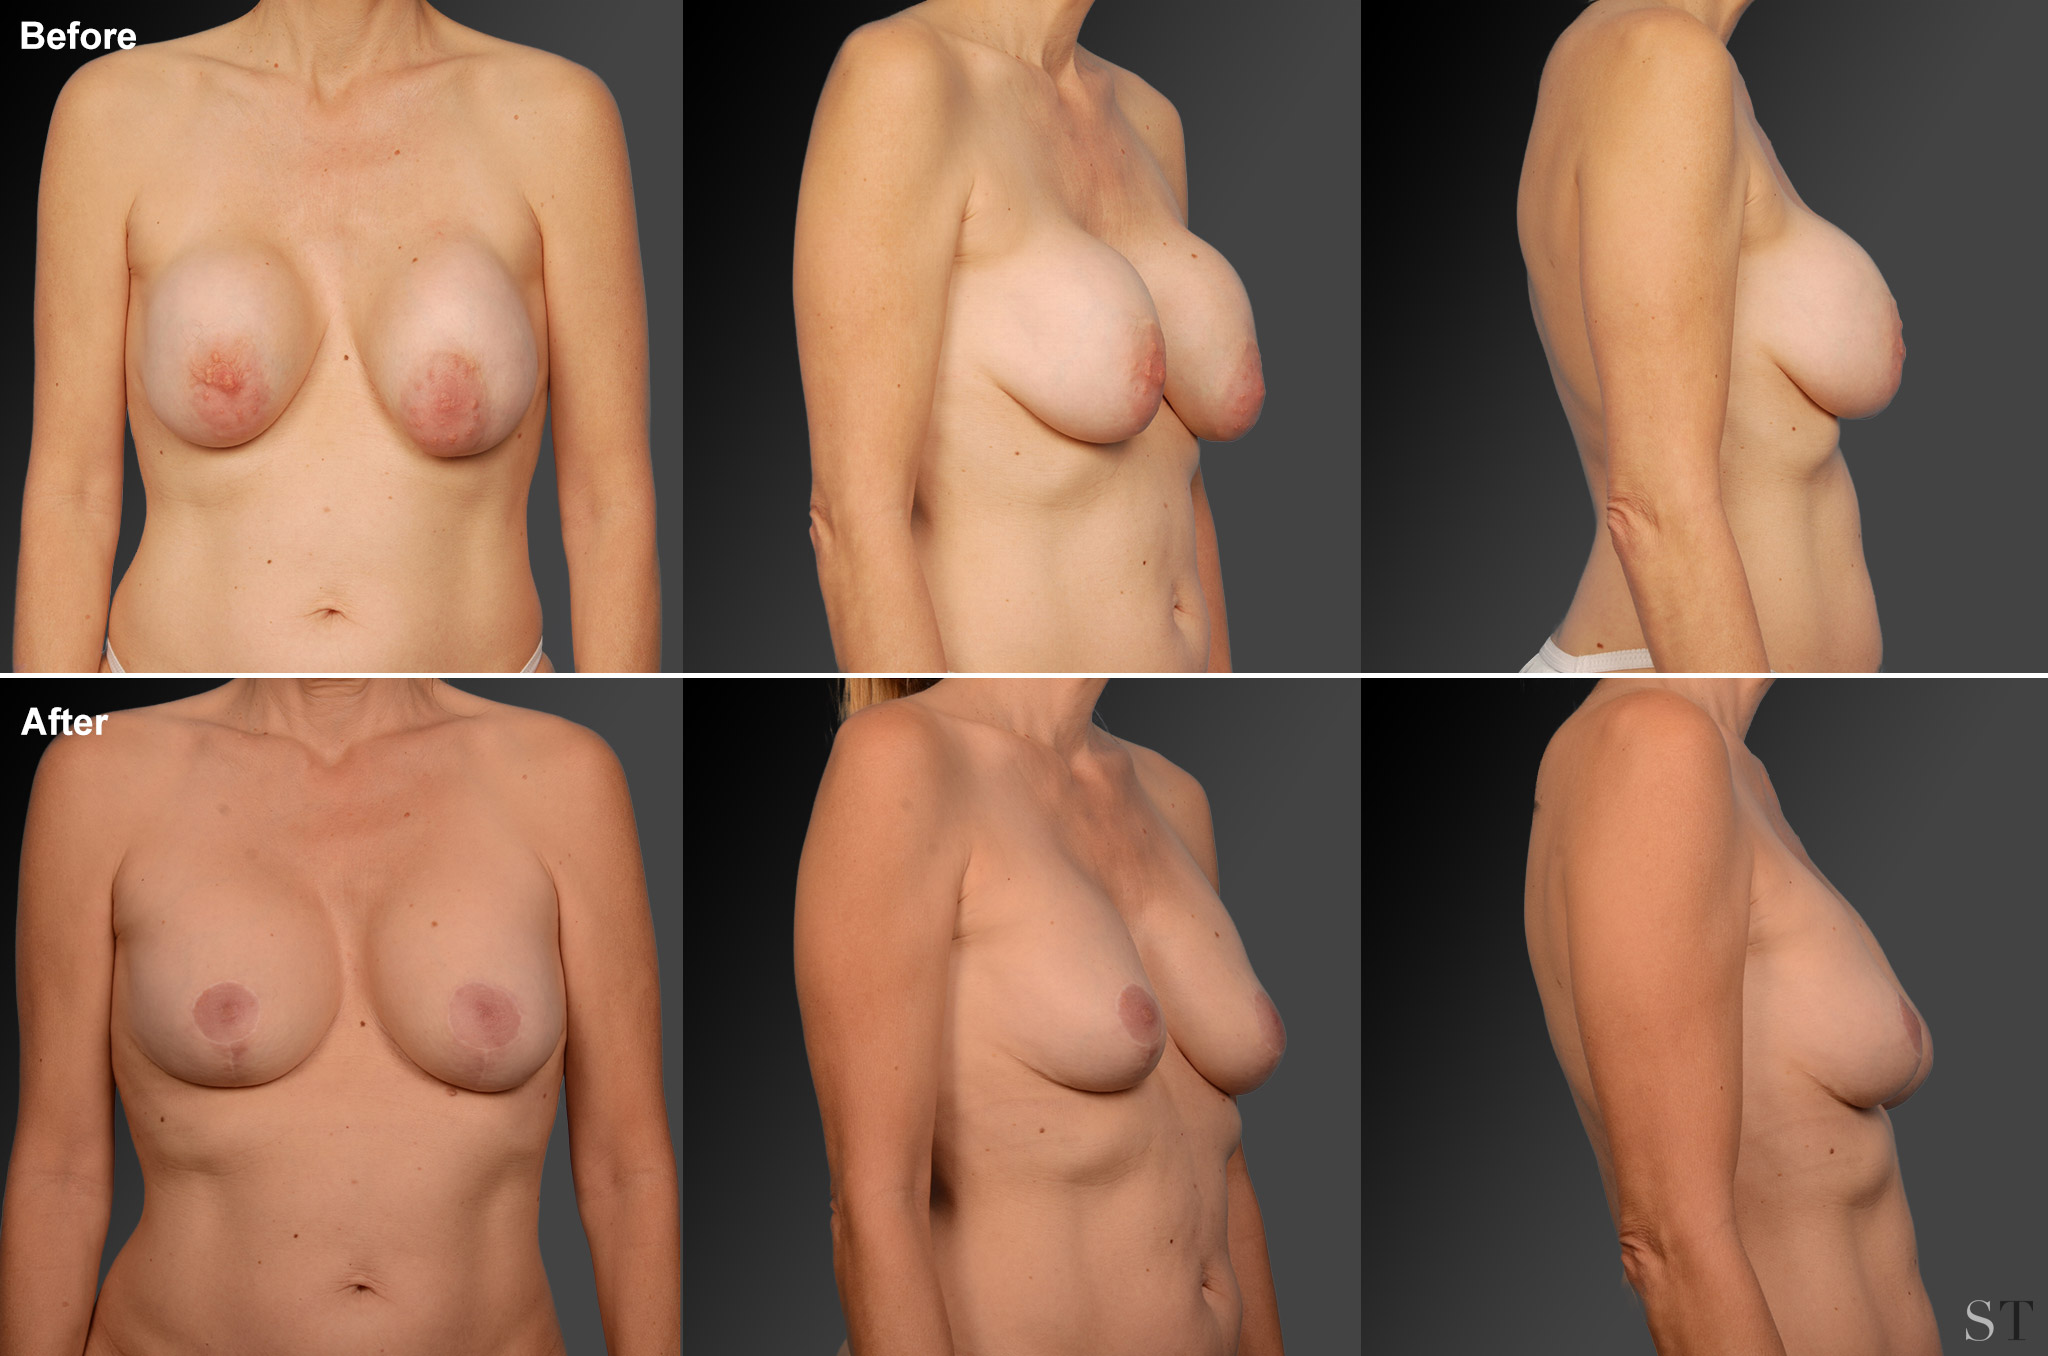 Capsular Contracture Before & After 15